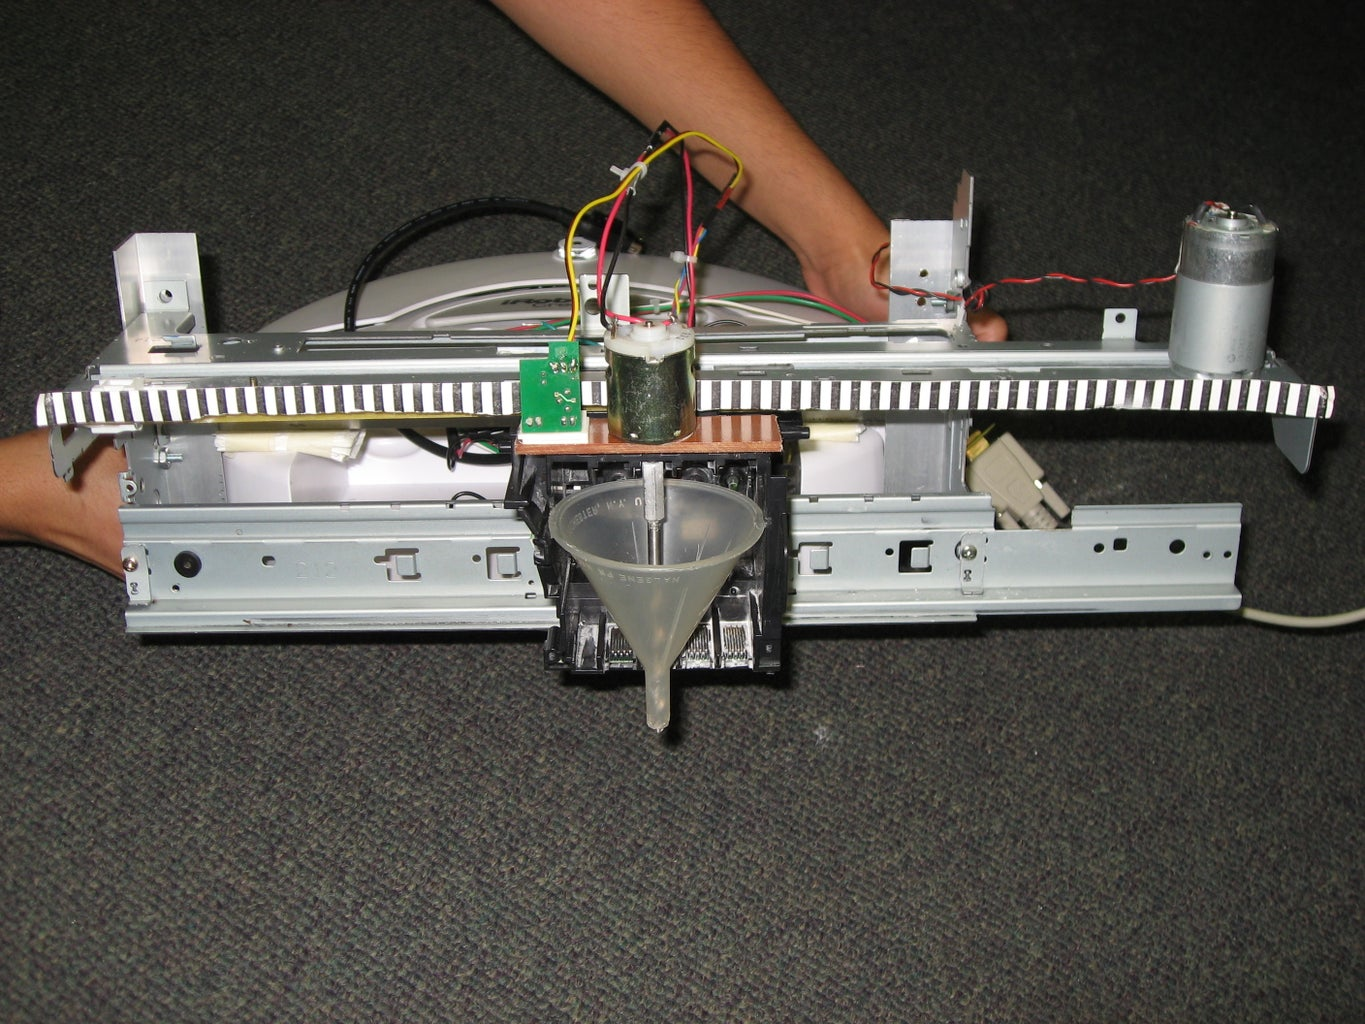 Printer Disassembly and Motor Control